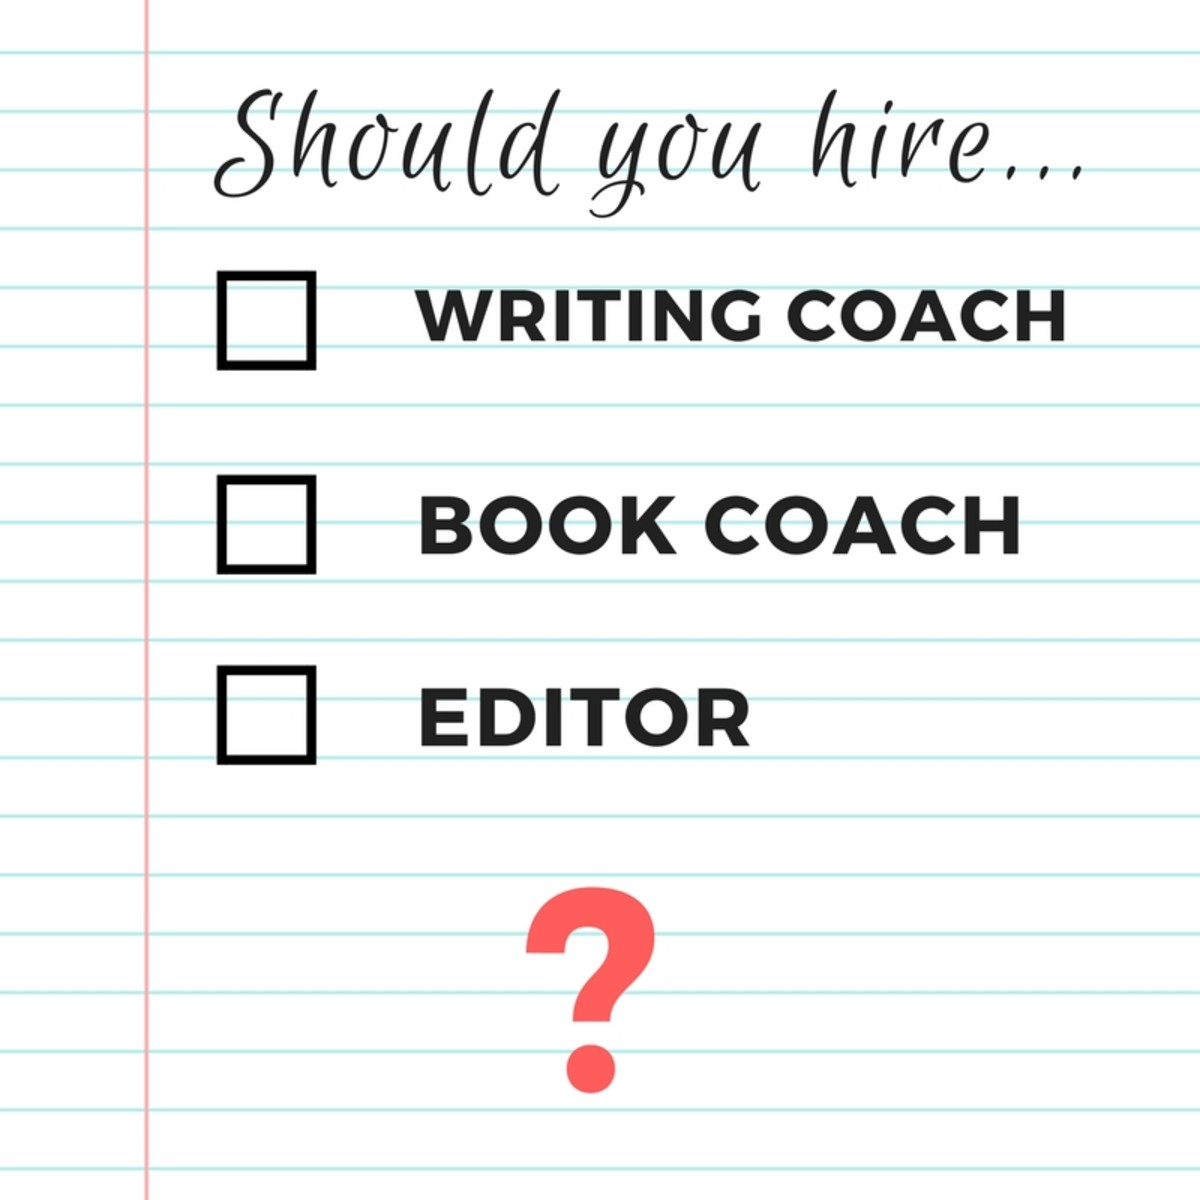 Should You Hire a Writing Coach, Book Coach, or Editor?